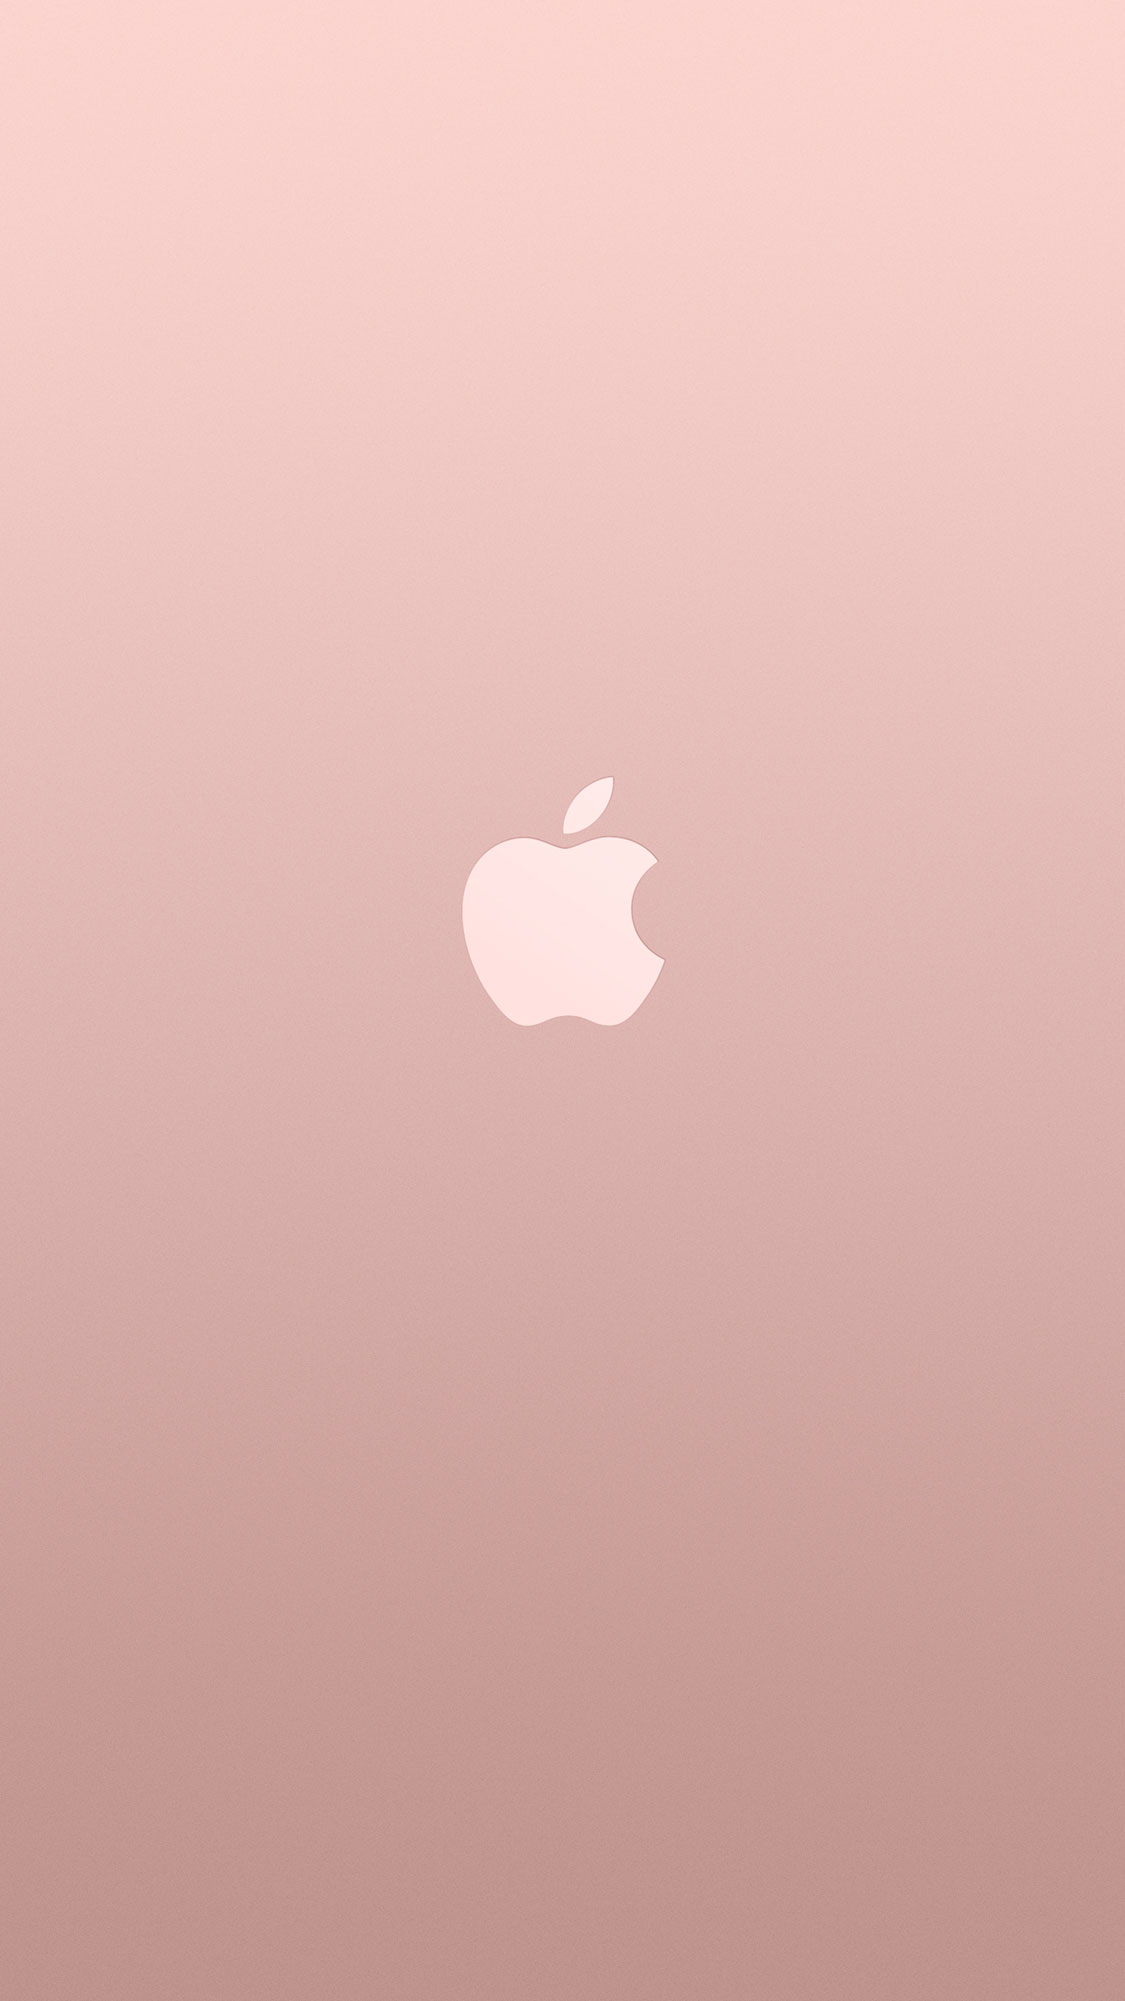 Iphone-Rose-Gold-iphonerosegold-wallpaper-wp426576